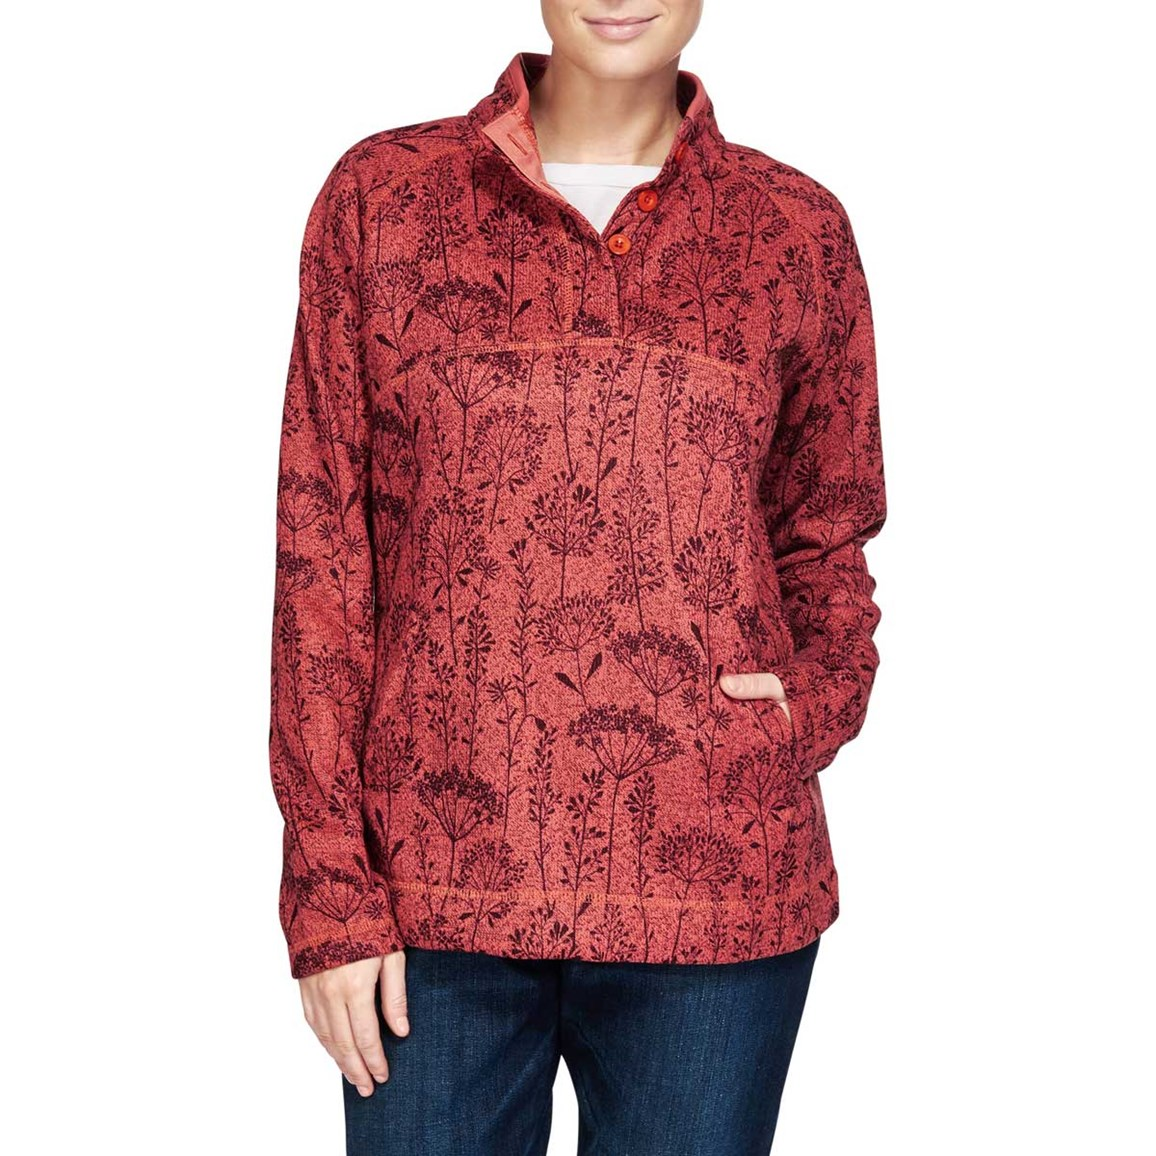 Image of Milin Floral Printed Soft Knit Fleece Sweatshirt Foxberry